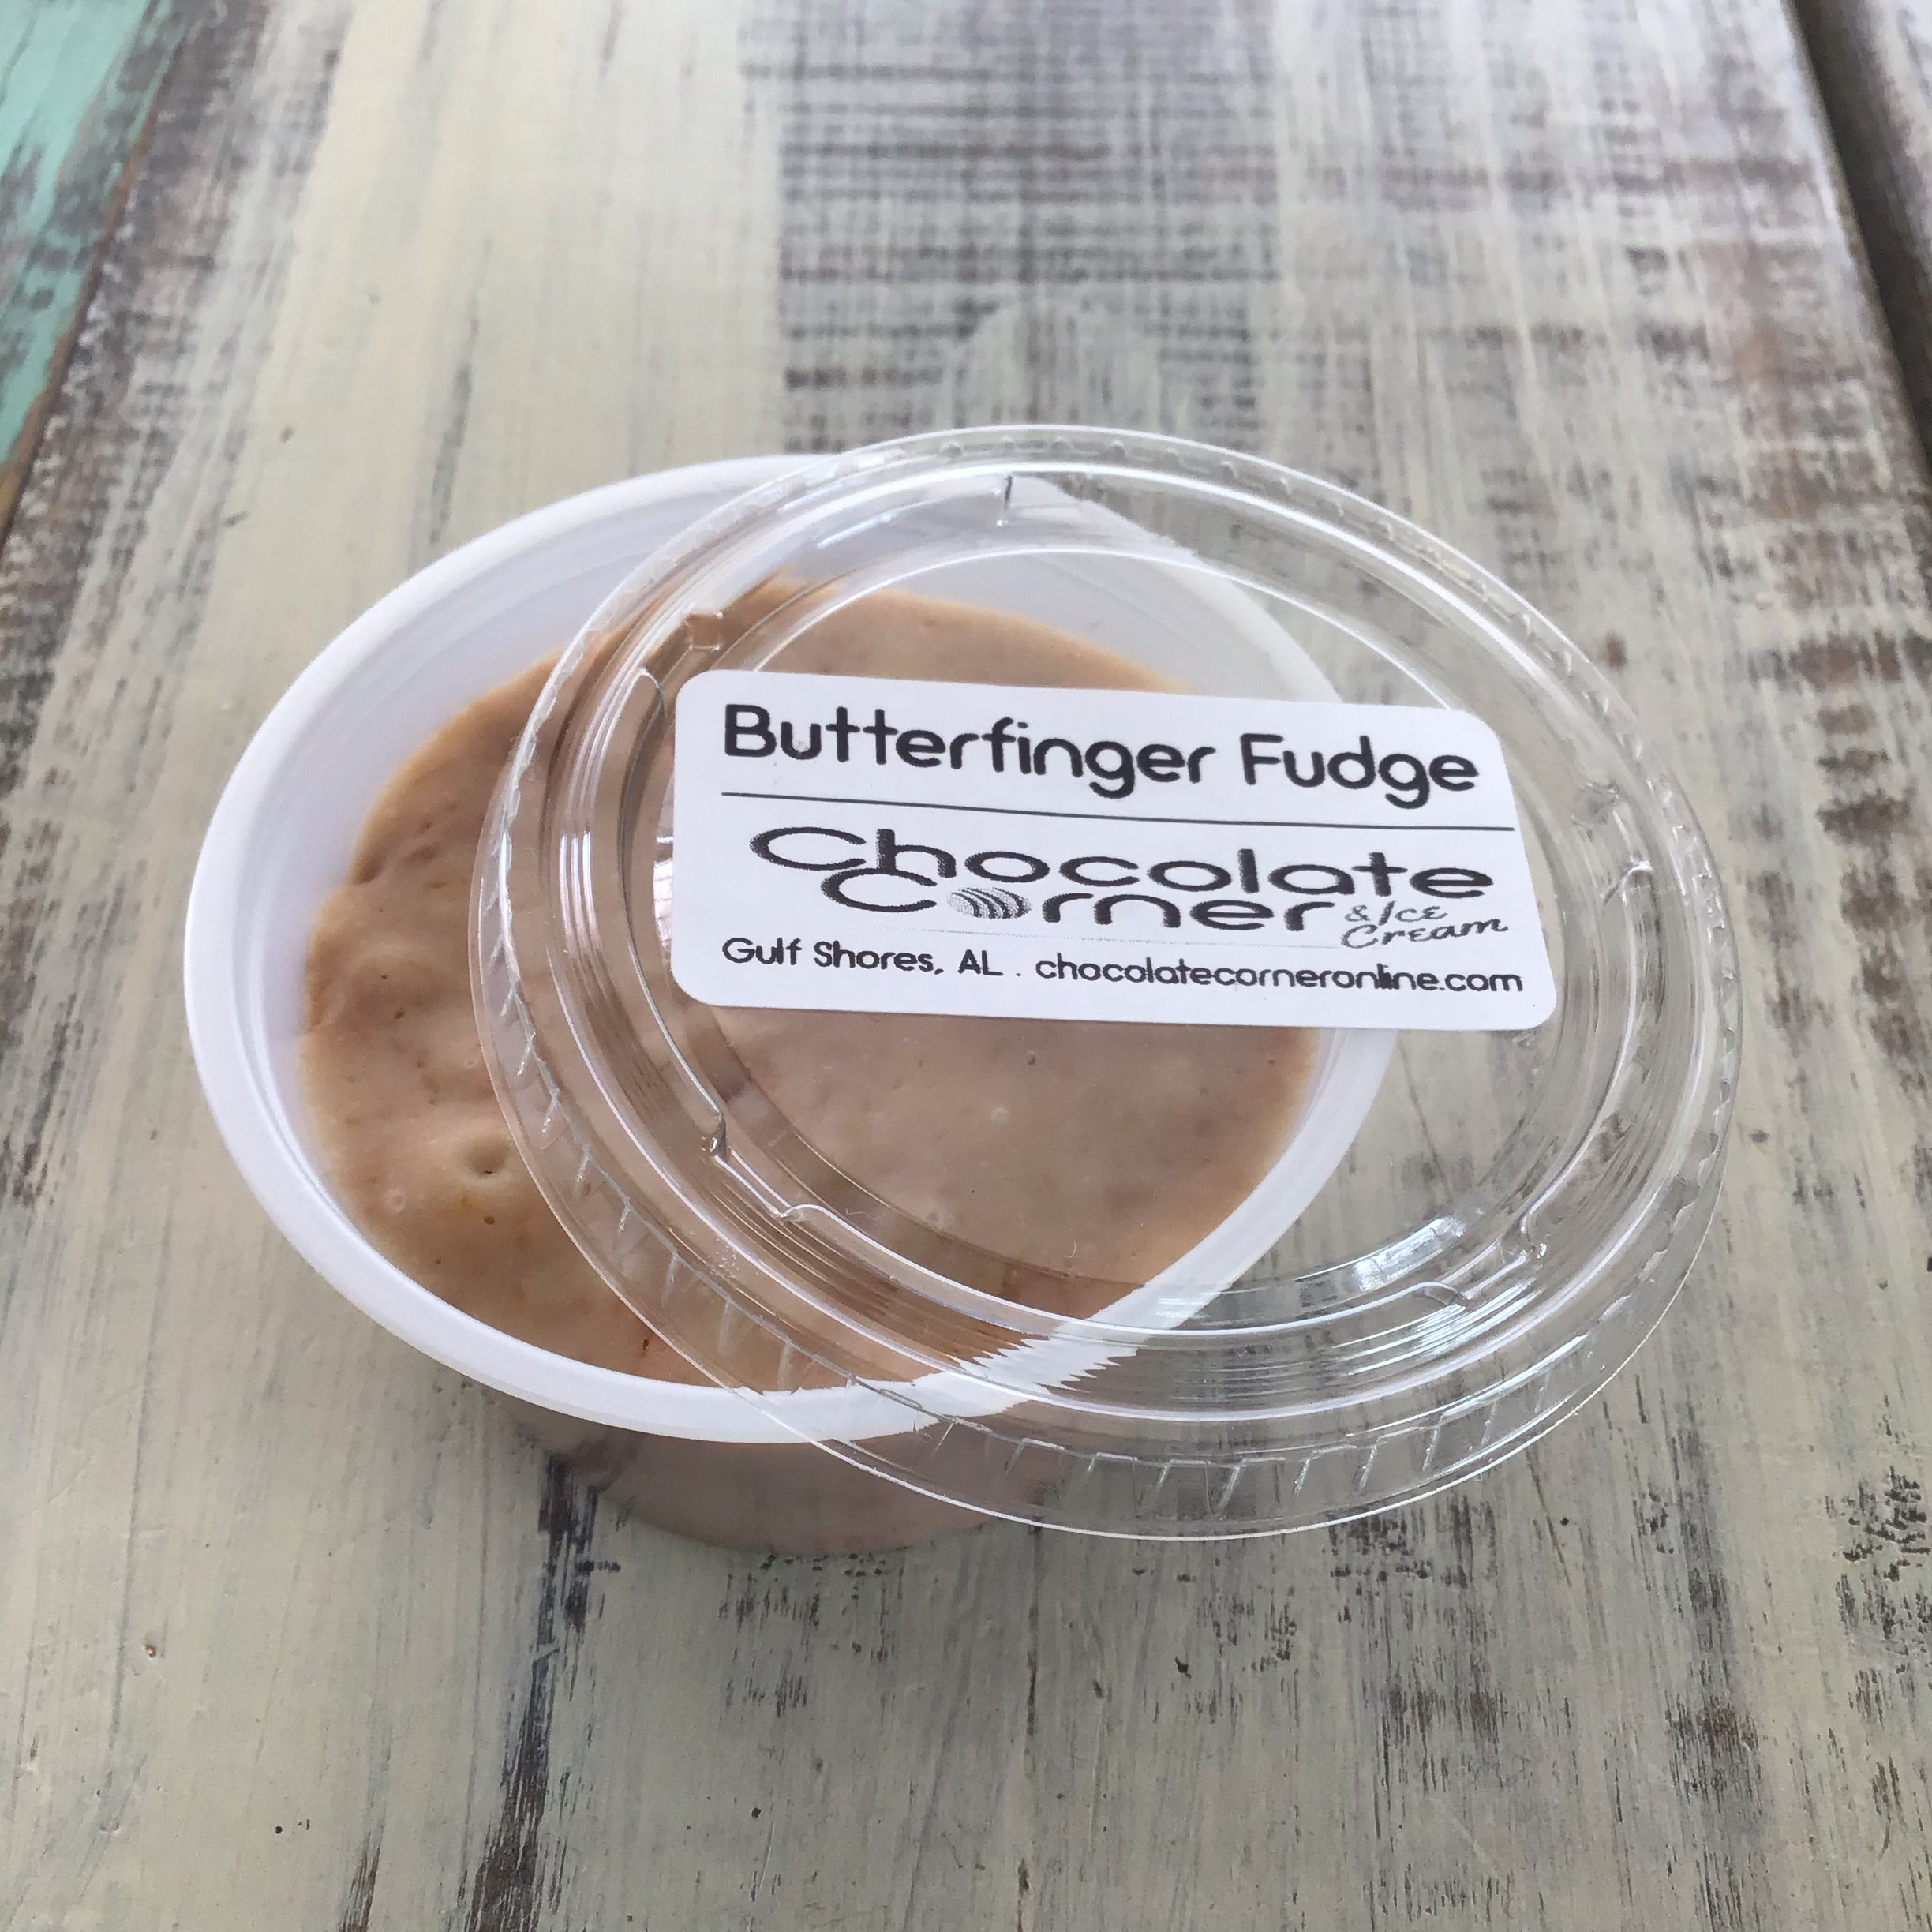 Butterfinger Fudge Cup